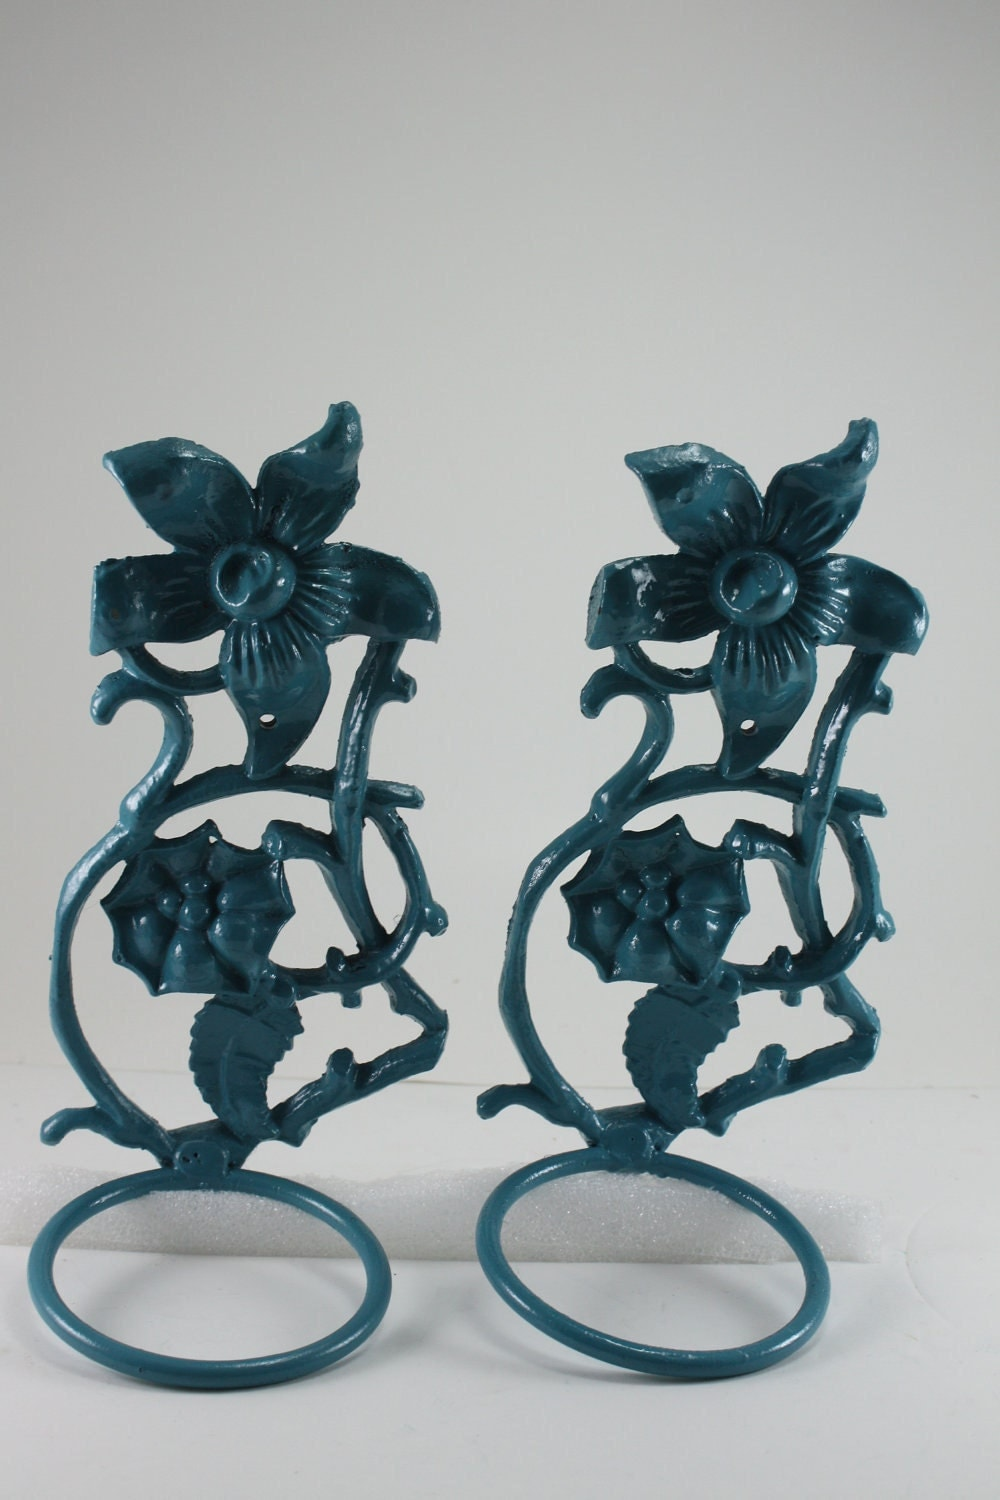 Wall Sconce Plant Holder : Vintage Metal Wall Sconces Planter Pot Holders Aqua by cybersenora